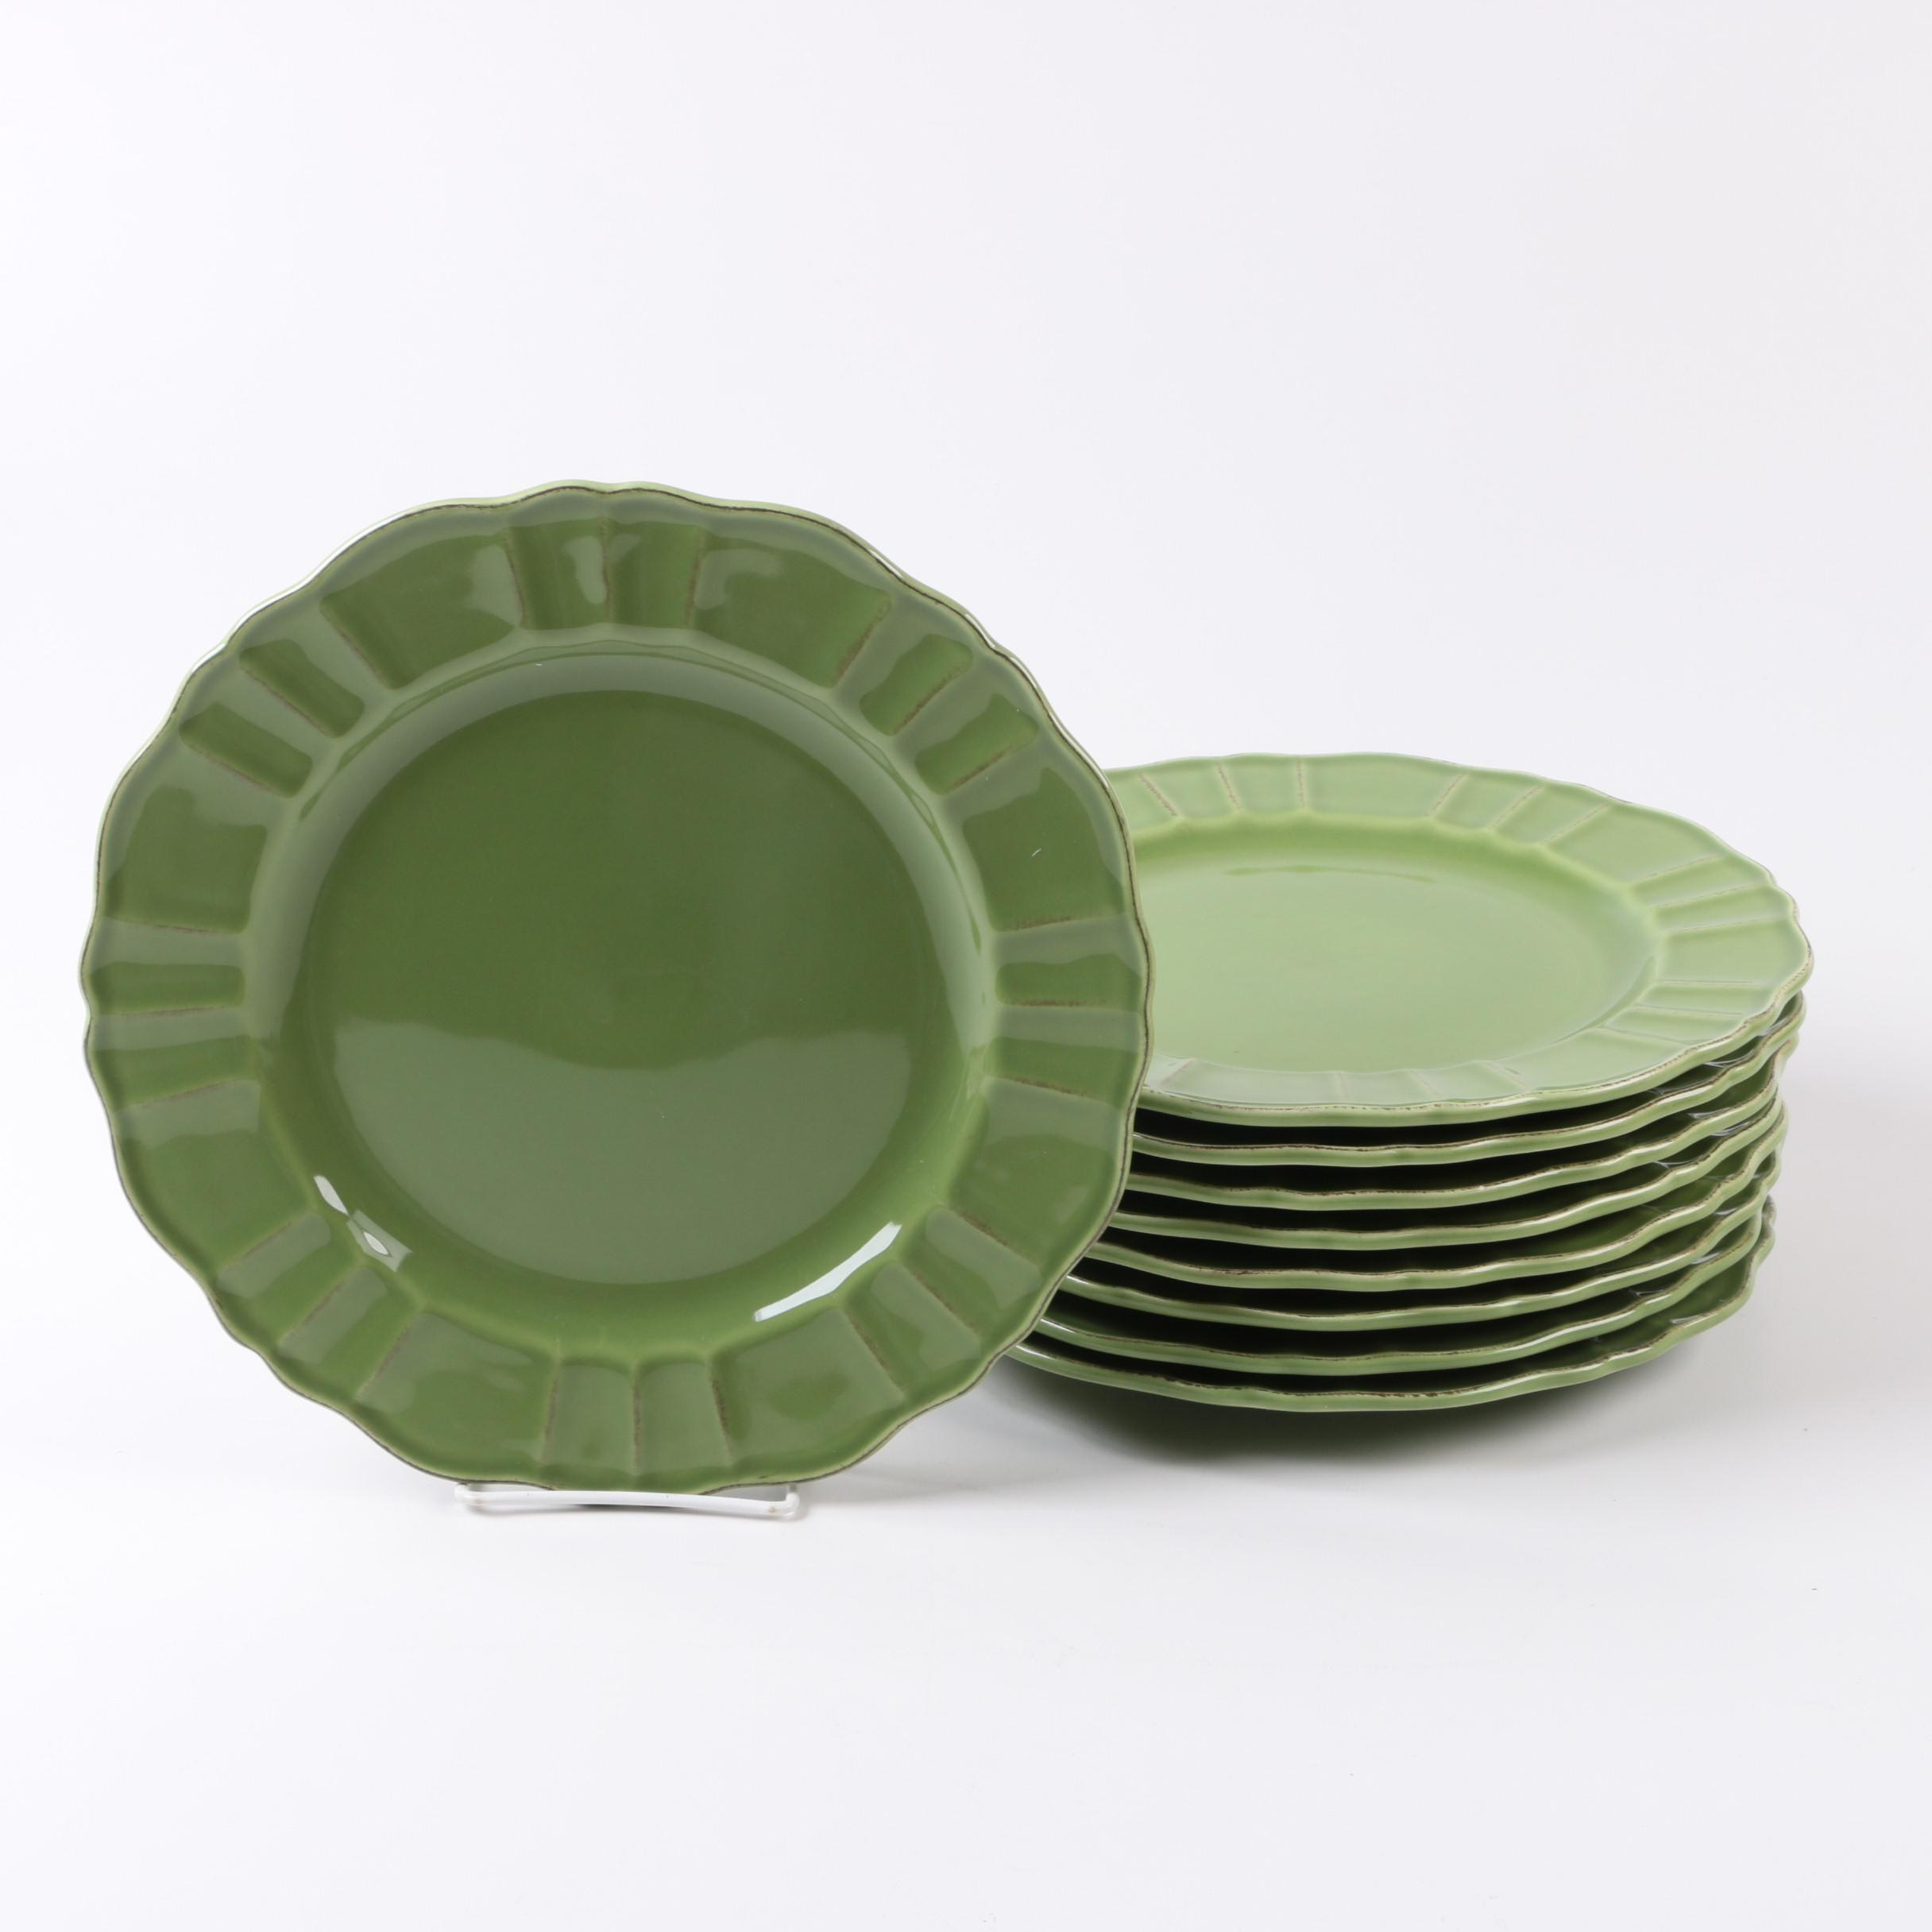 World Market Green Dinner Plates Made in Portugal ... & World Market Green Dinner Plates Made in Portugal : EBTH